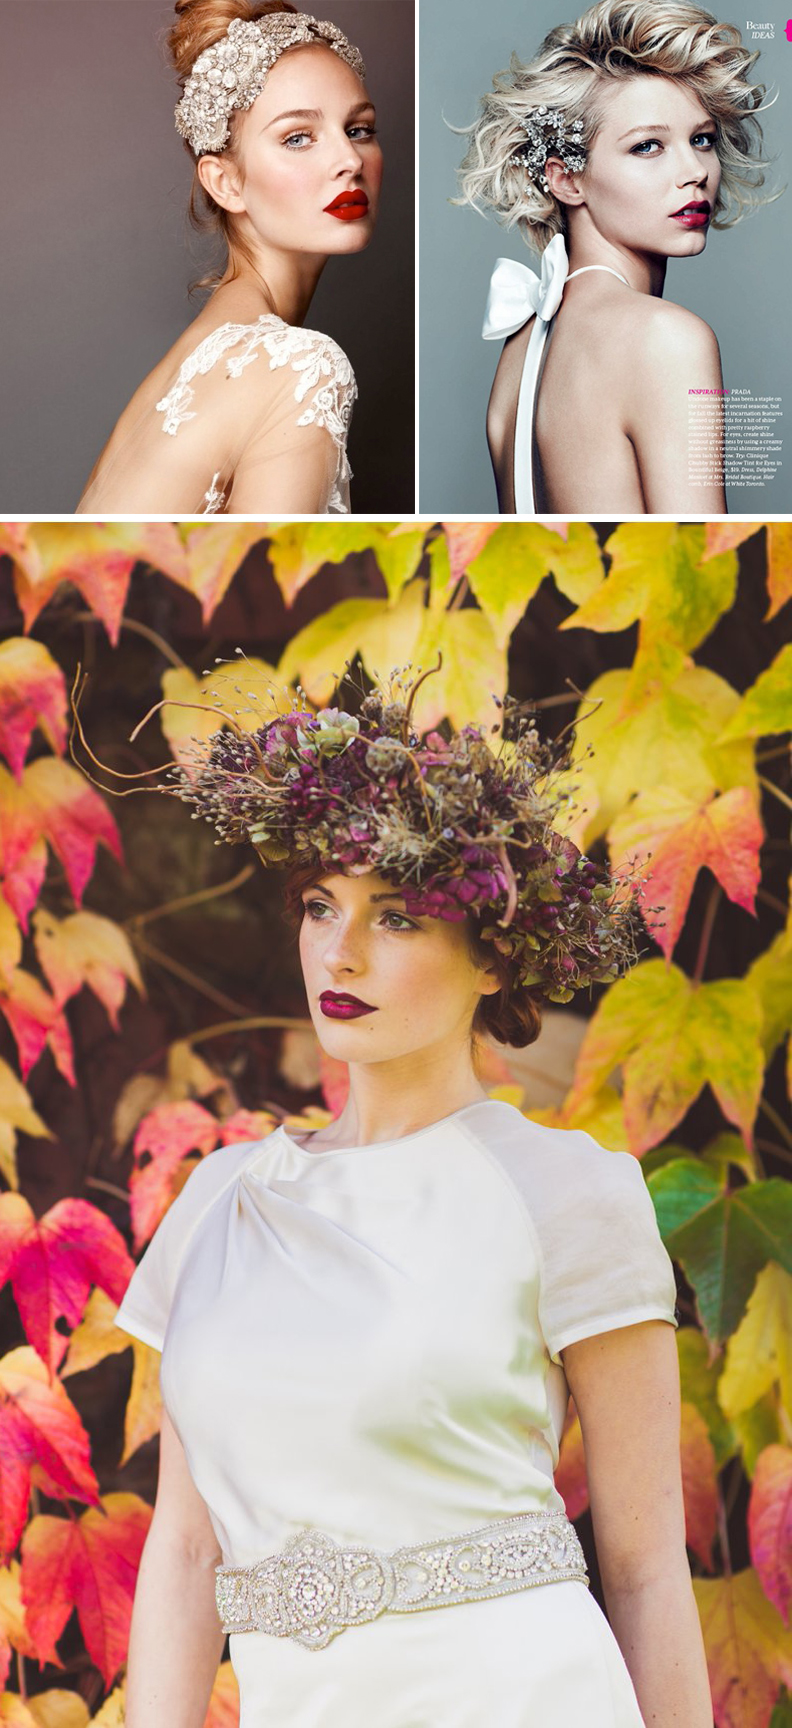 Top left image: www.aubresbridal.com; Top right image: Chris Nicholls; Bottom image: www.rockmywedding.co.uk